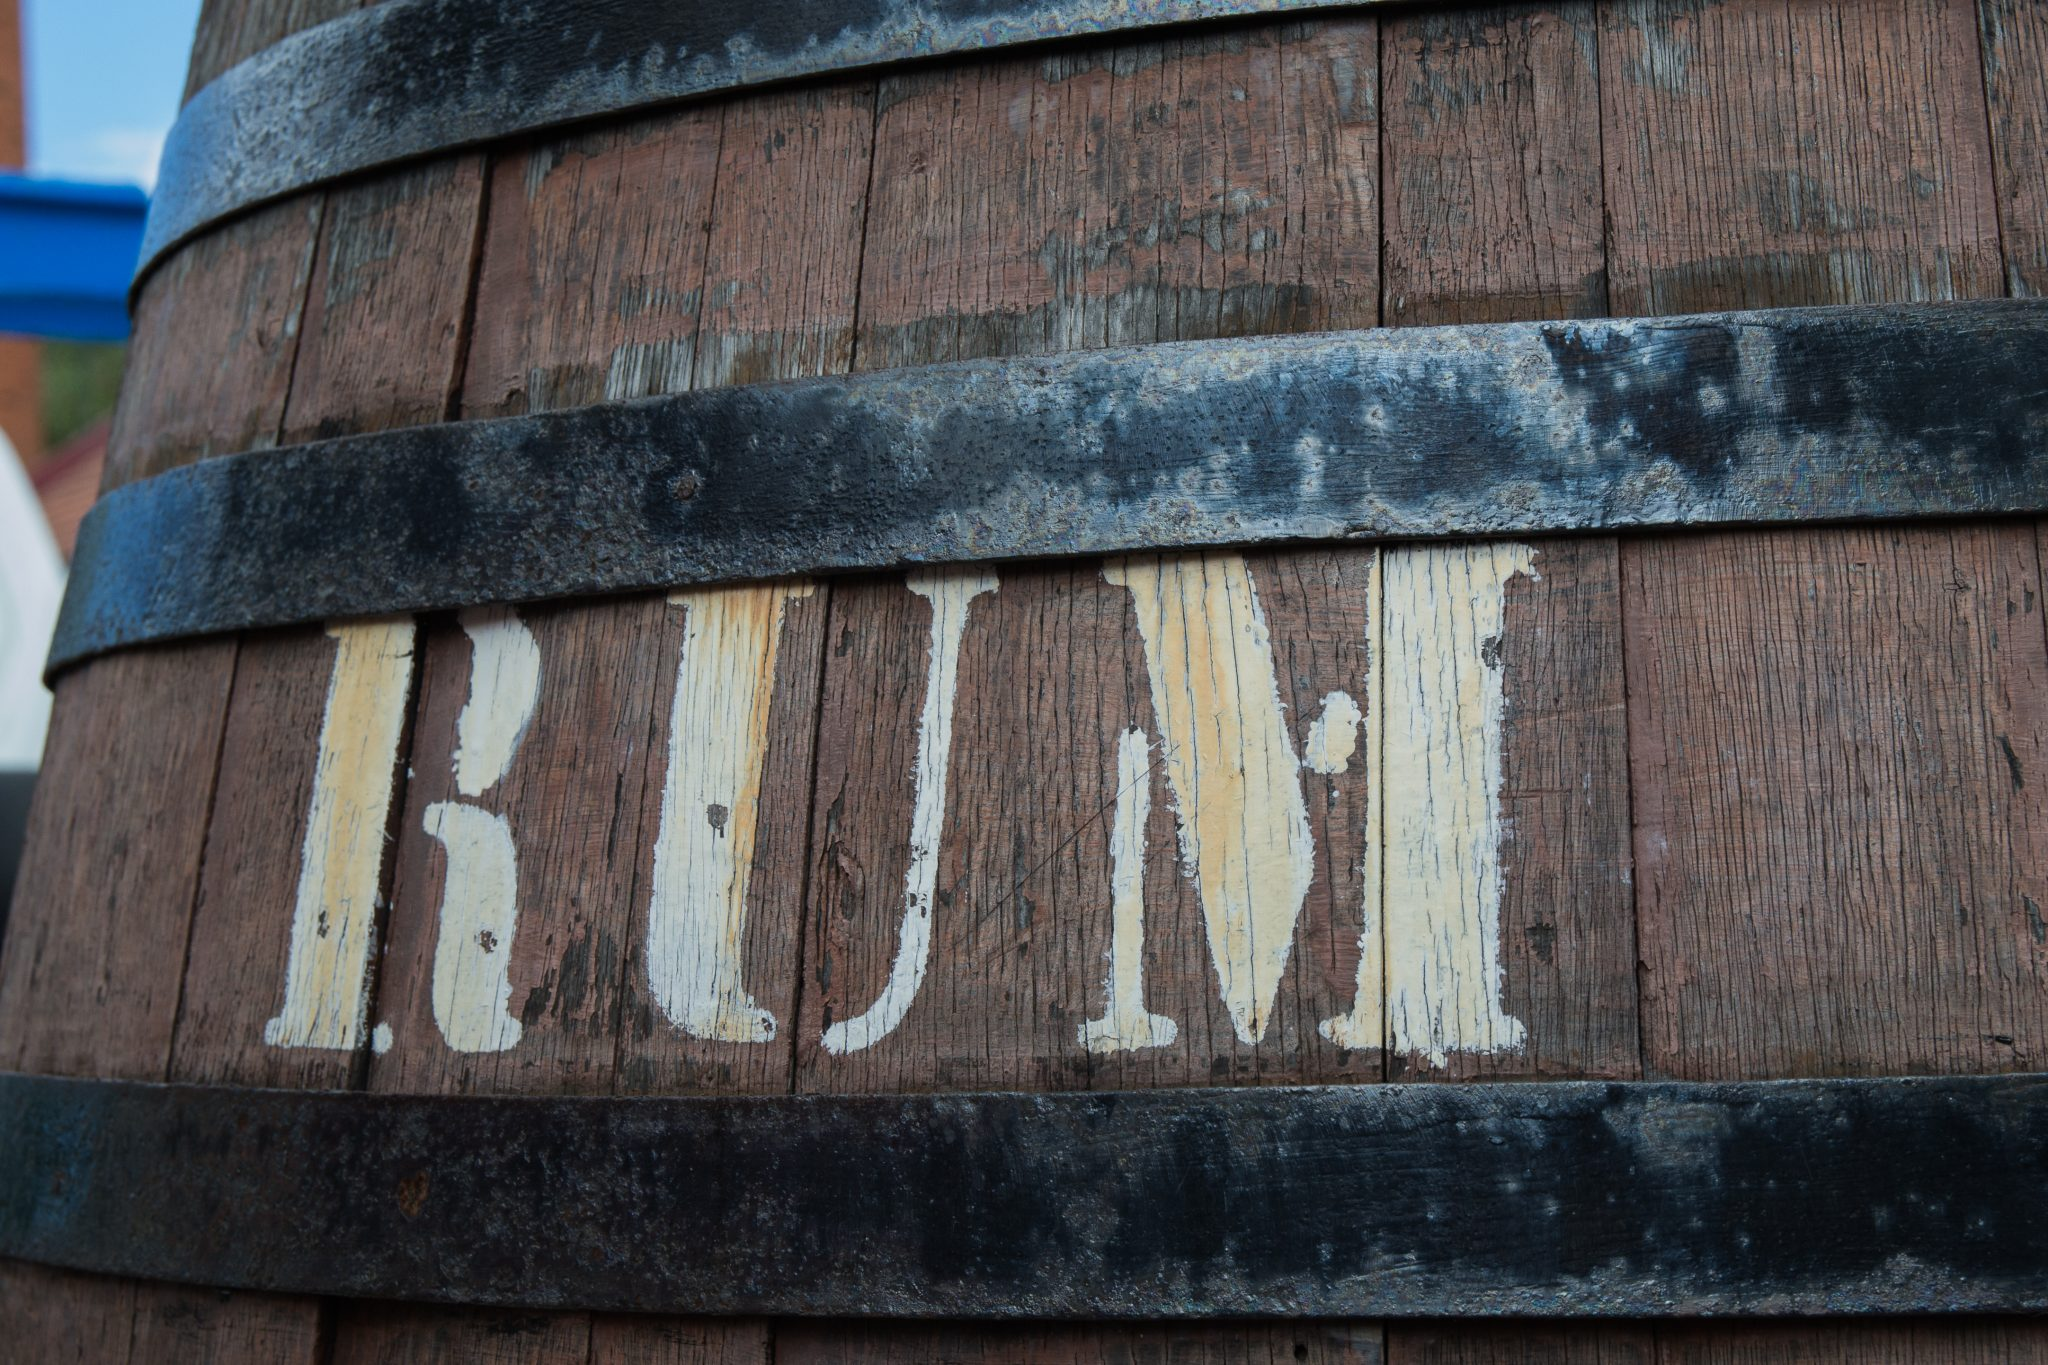 How Long Does Rum Last? Can It Go Bad?